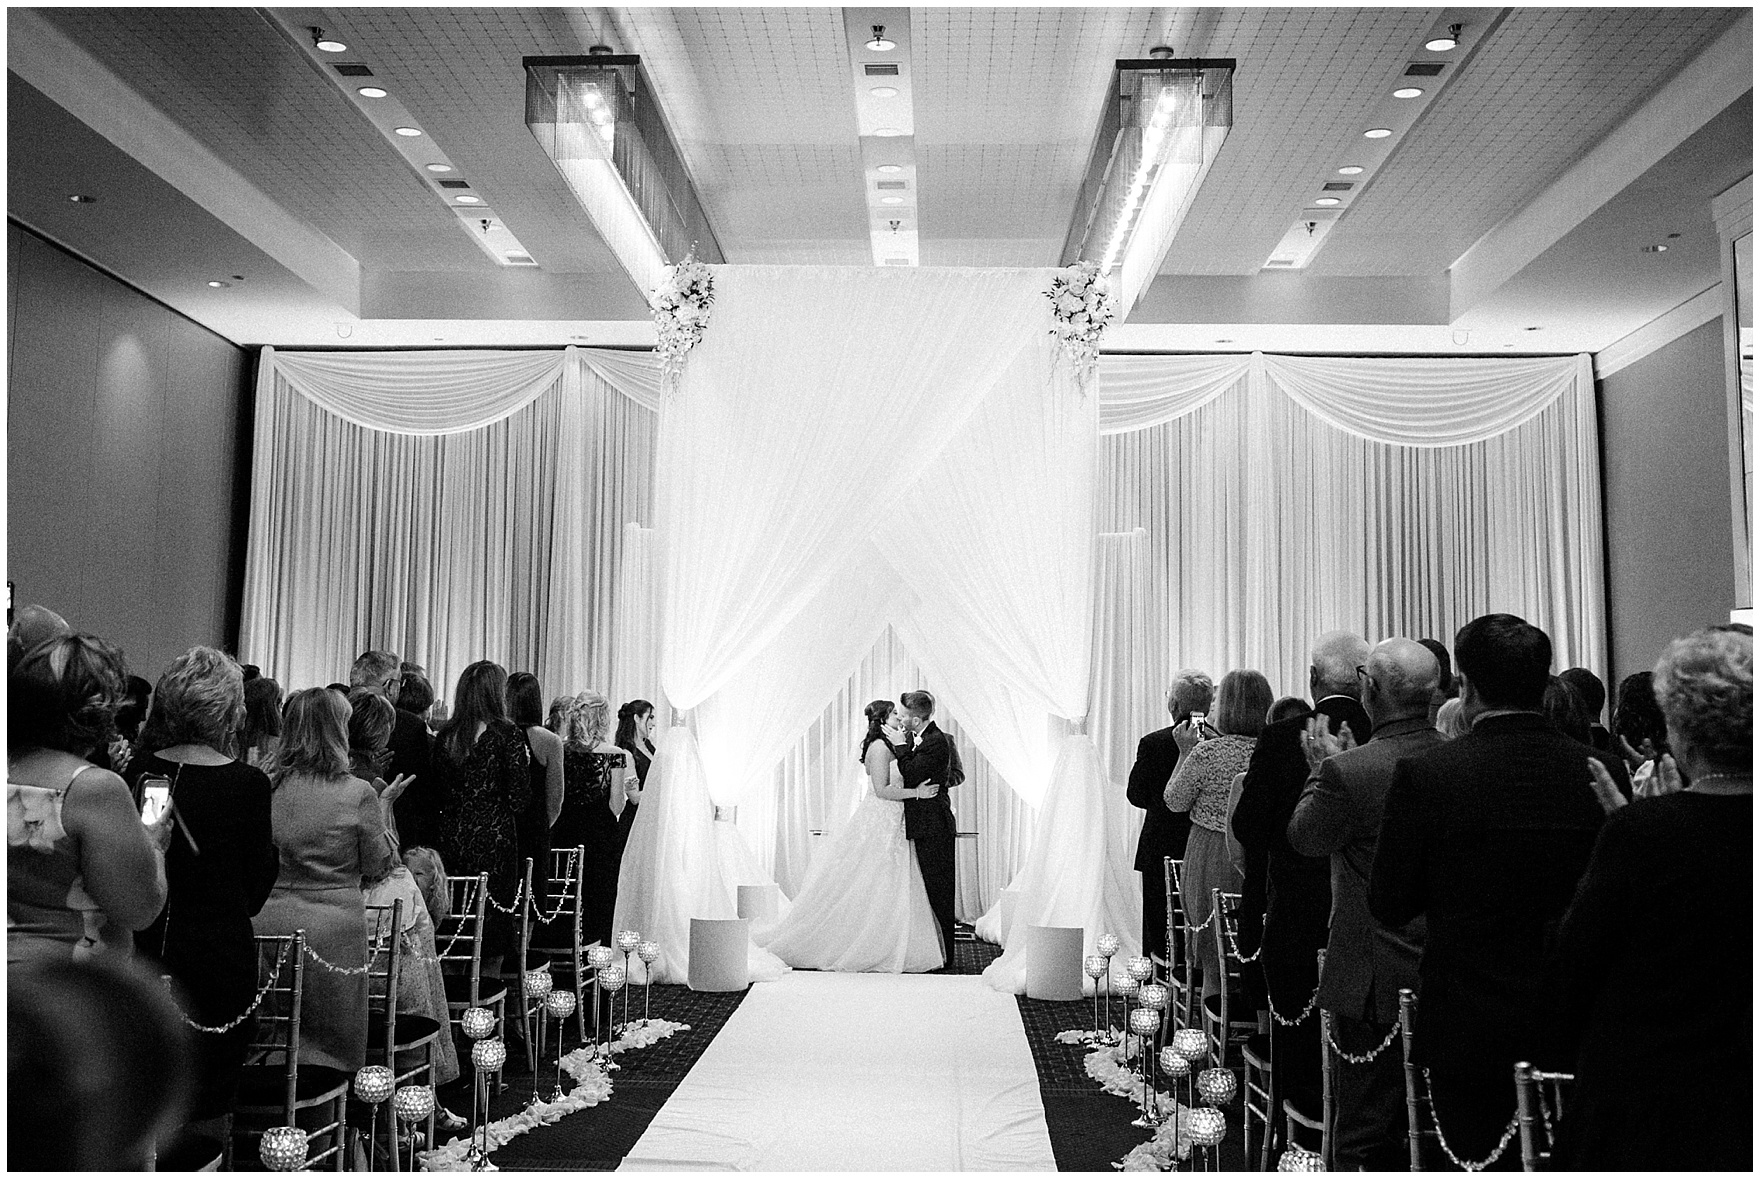 An elegant ceremony setting with candlelight and crystals for a Hotel Arista Naperville wedding.